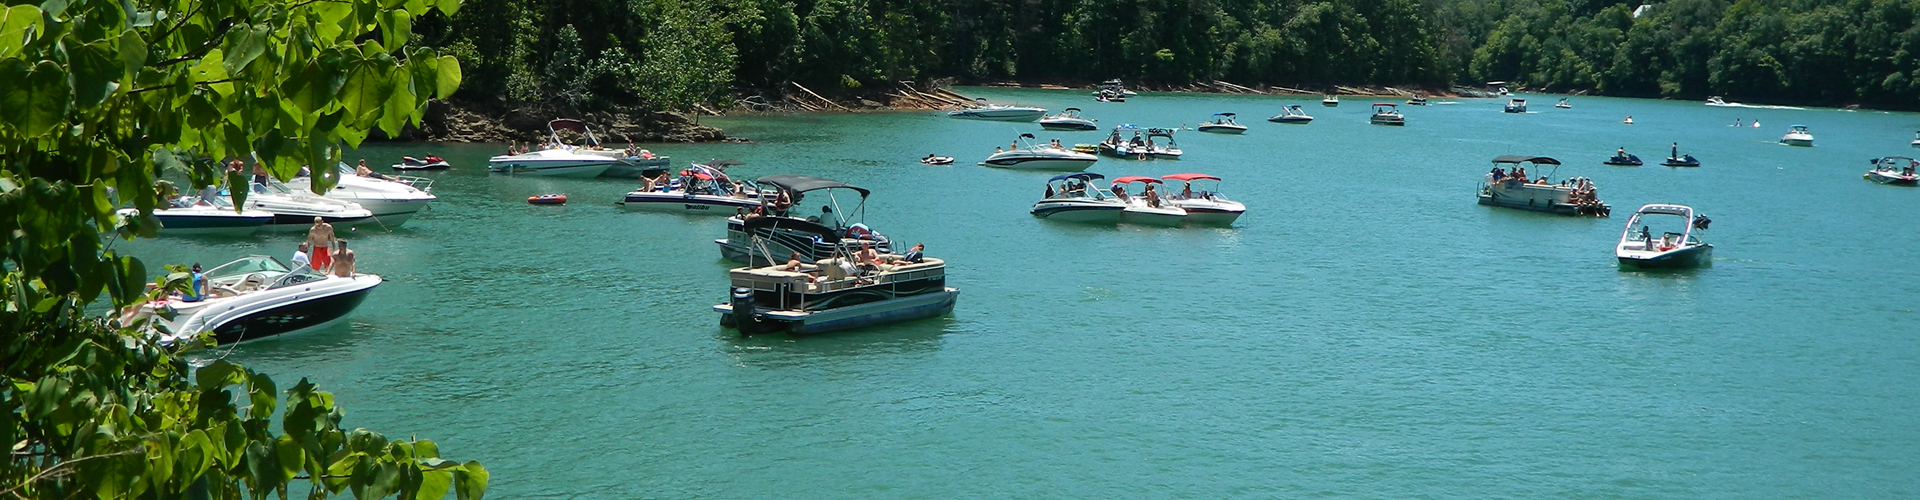 Norris lake slider image 1920 x 500 for Norris lake fishing report